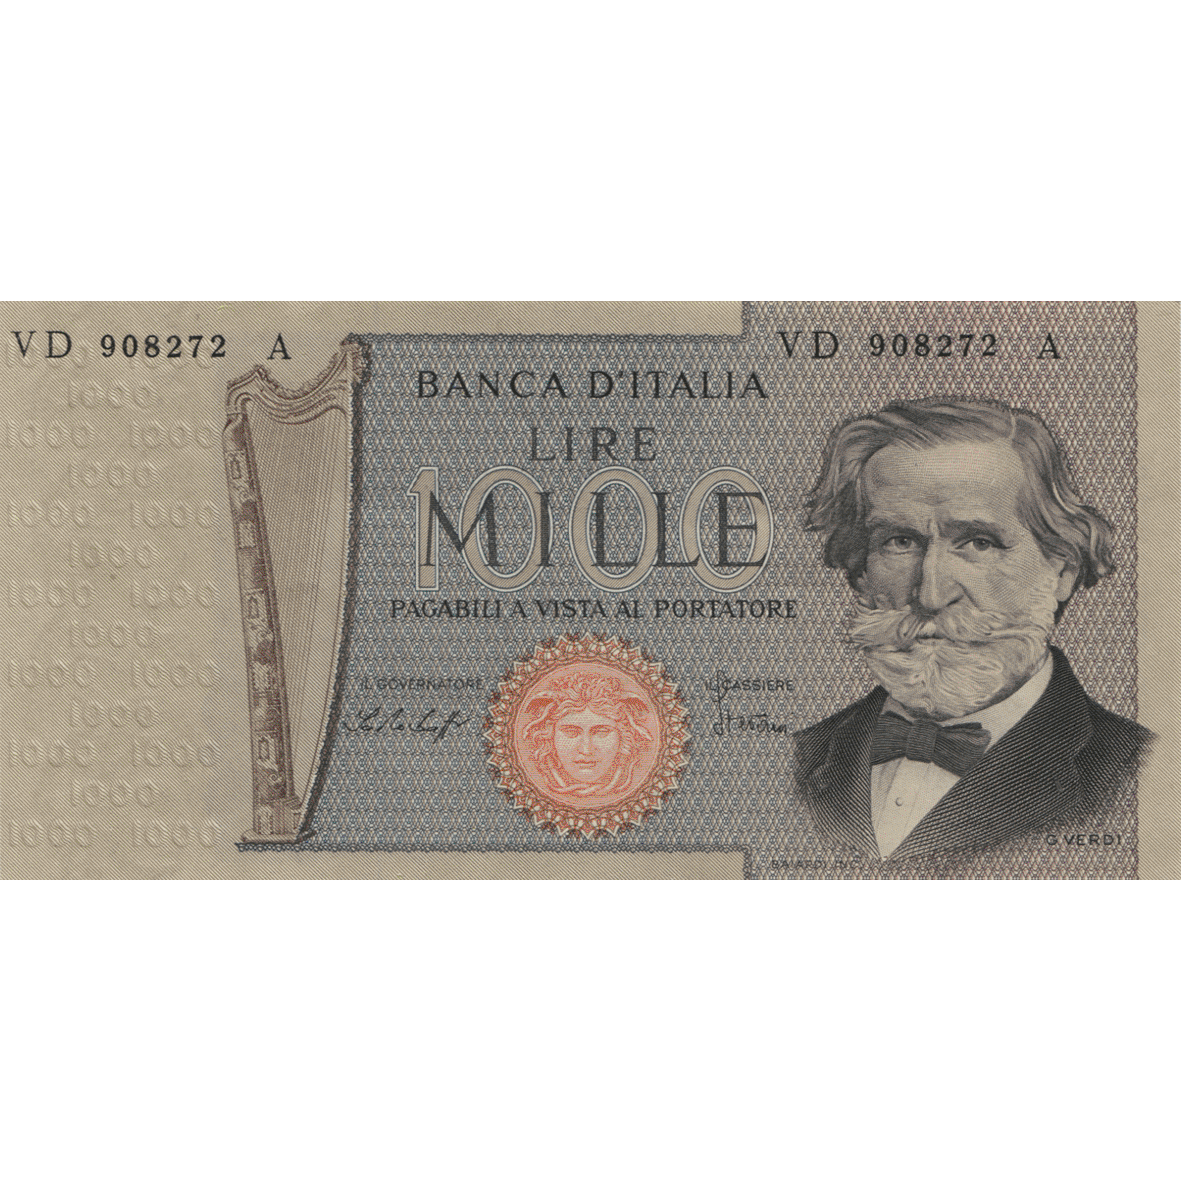 Republic of Italy, 100'000 Lire, in circulation 1967-1974 (obverse)